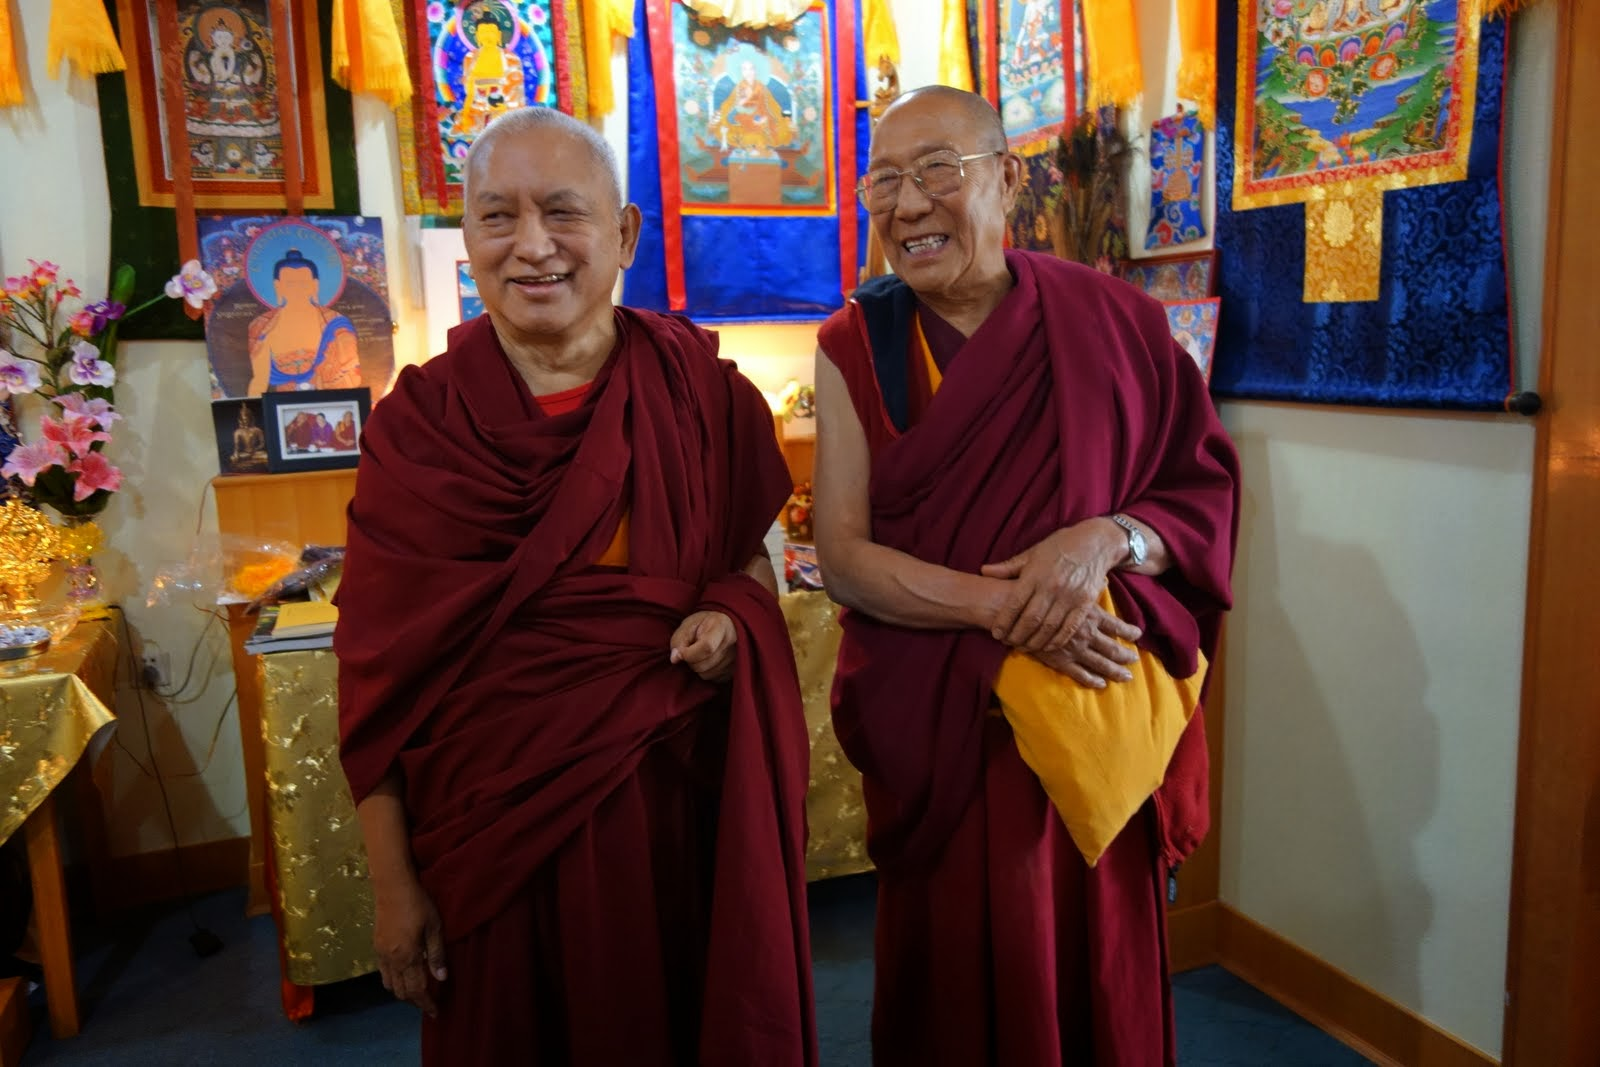 Panchen Otrul Rinpoche and Lama Zopa Rinpoche meeting for a relaxed lunch together at Shedrup Ling Ulaan Bataar. PanchenOtrulhasbeencomingtoMongoliatoteachandhelpwithsocialwork,especiallyforthepoor,since1995.RinpocheisbasedinIreland.Sep 9, 2013. Photo by Ven. Roger Kunsang.